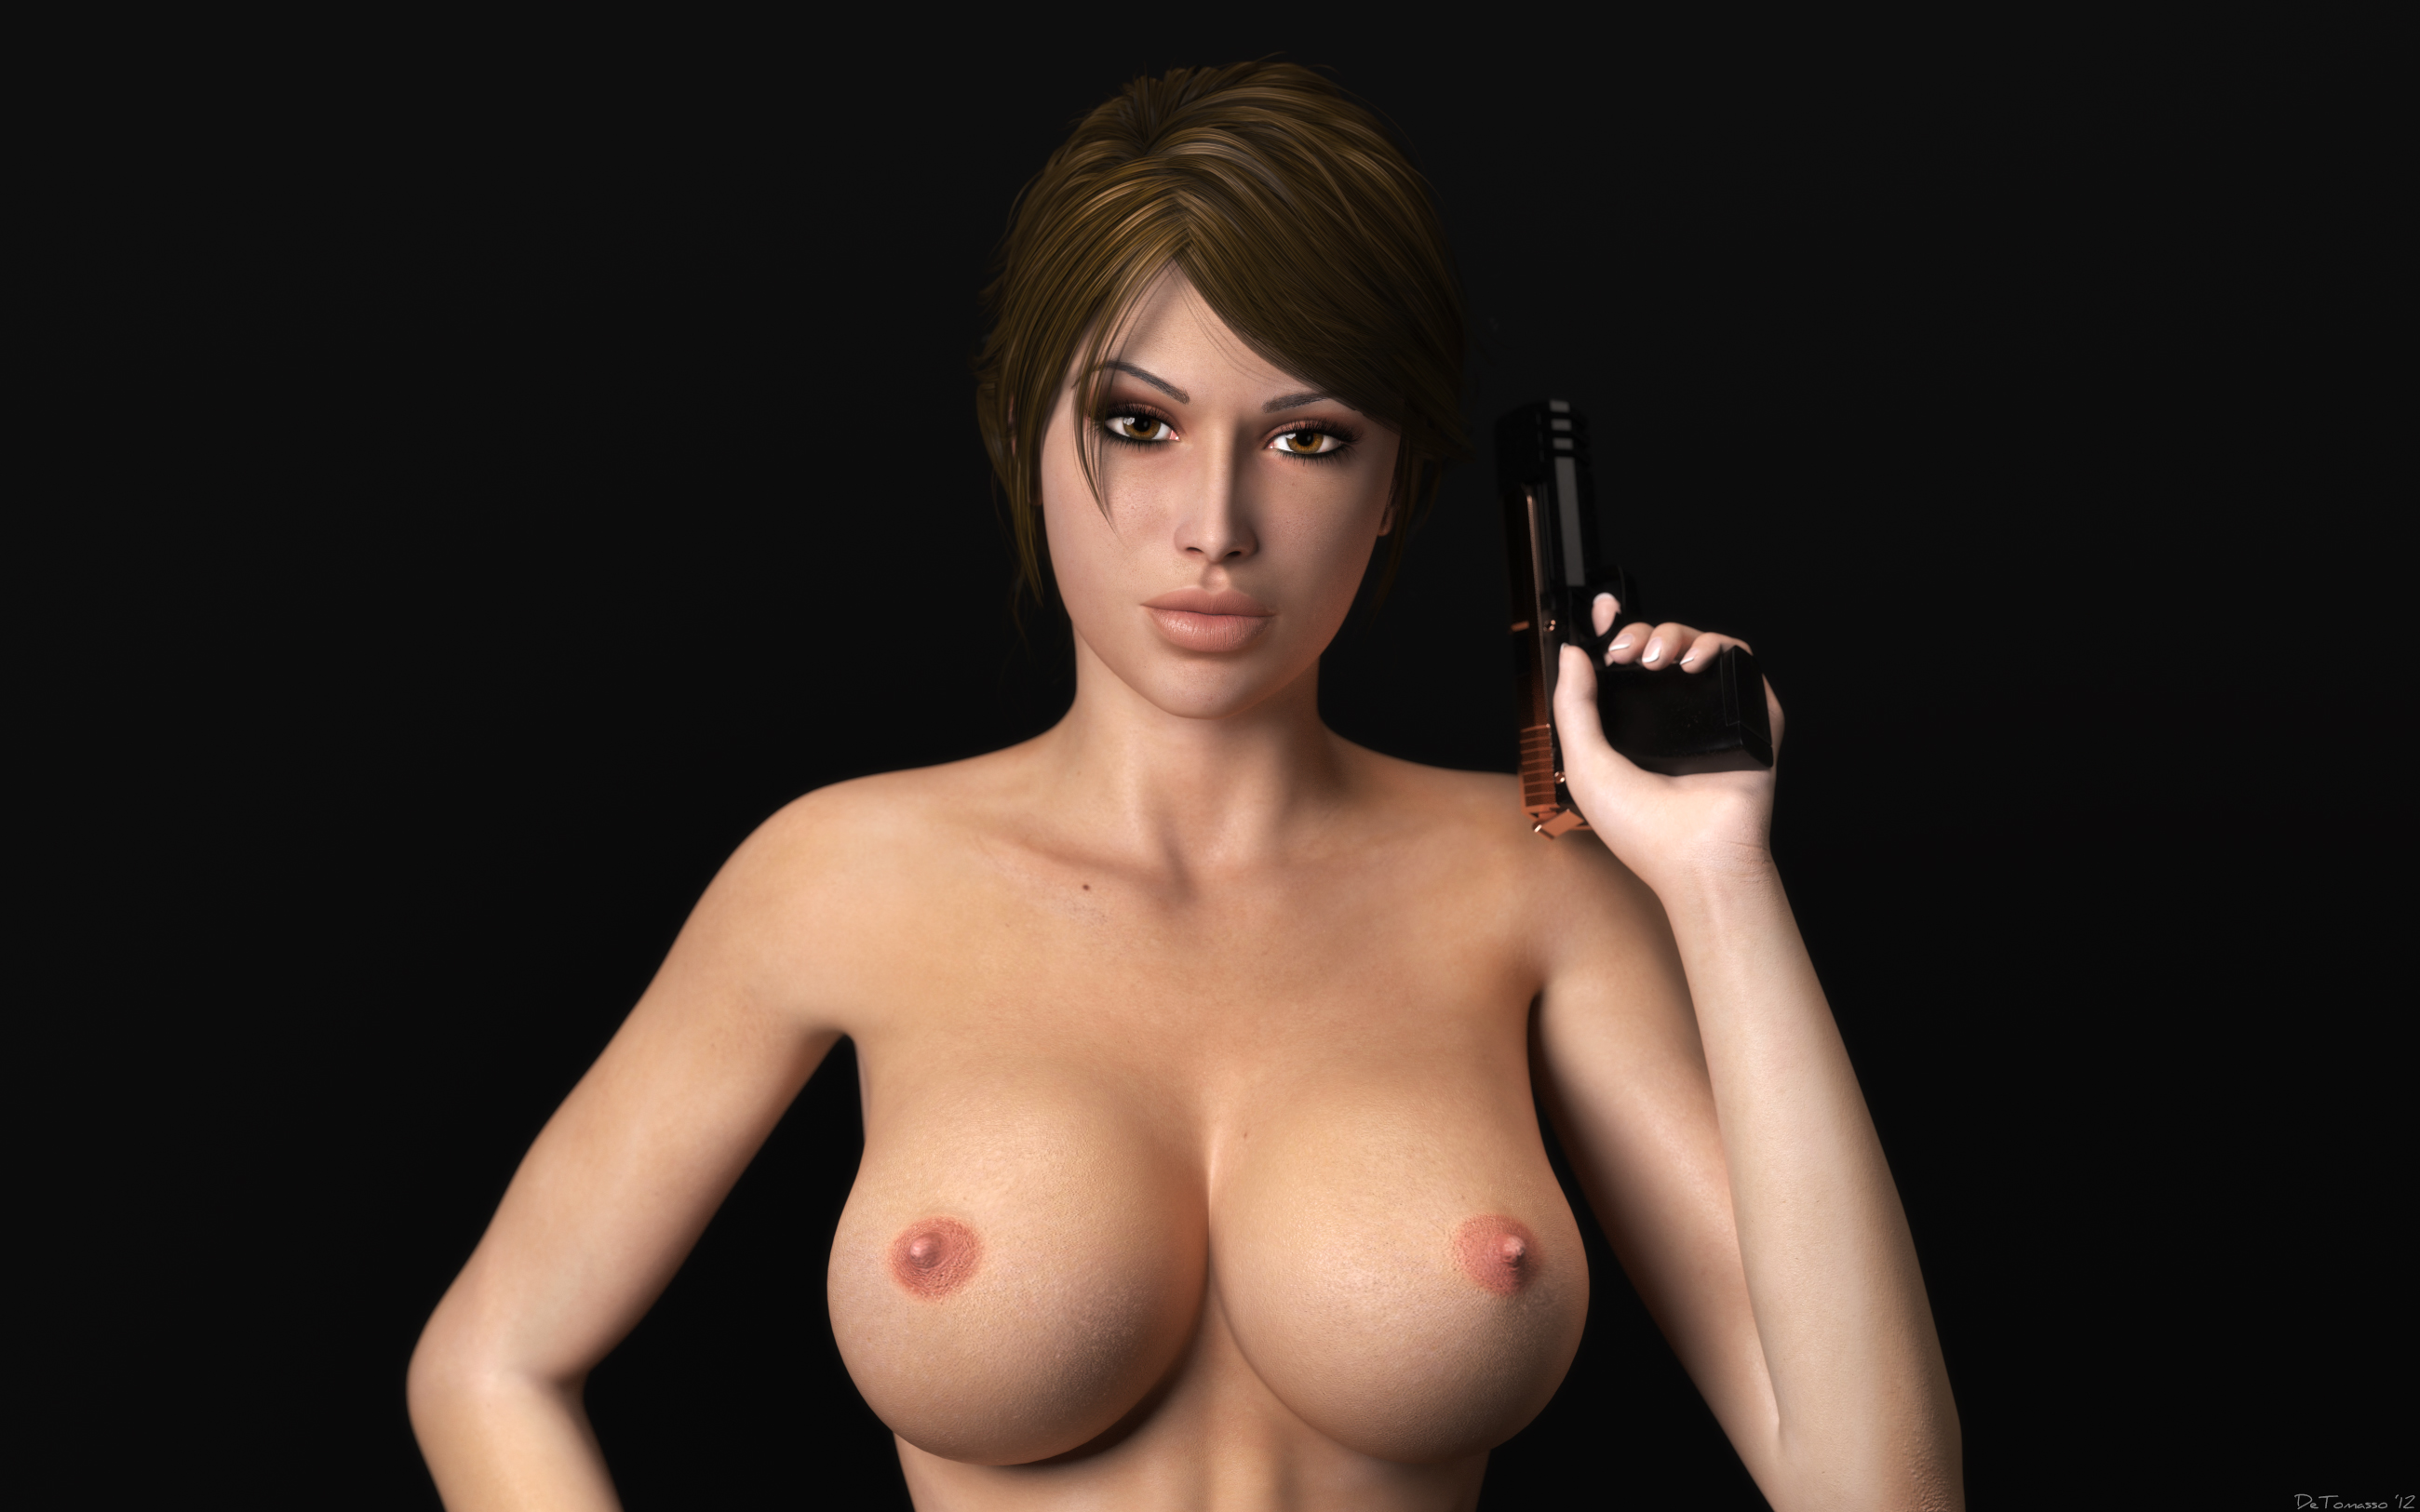 Naked lara croft hack sex galleries